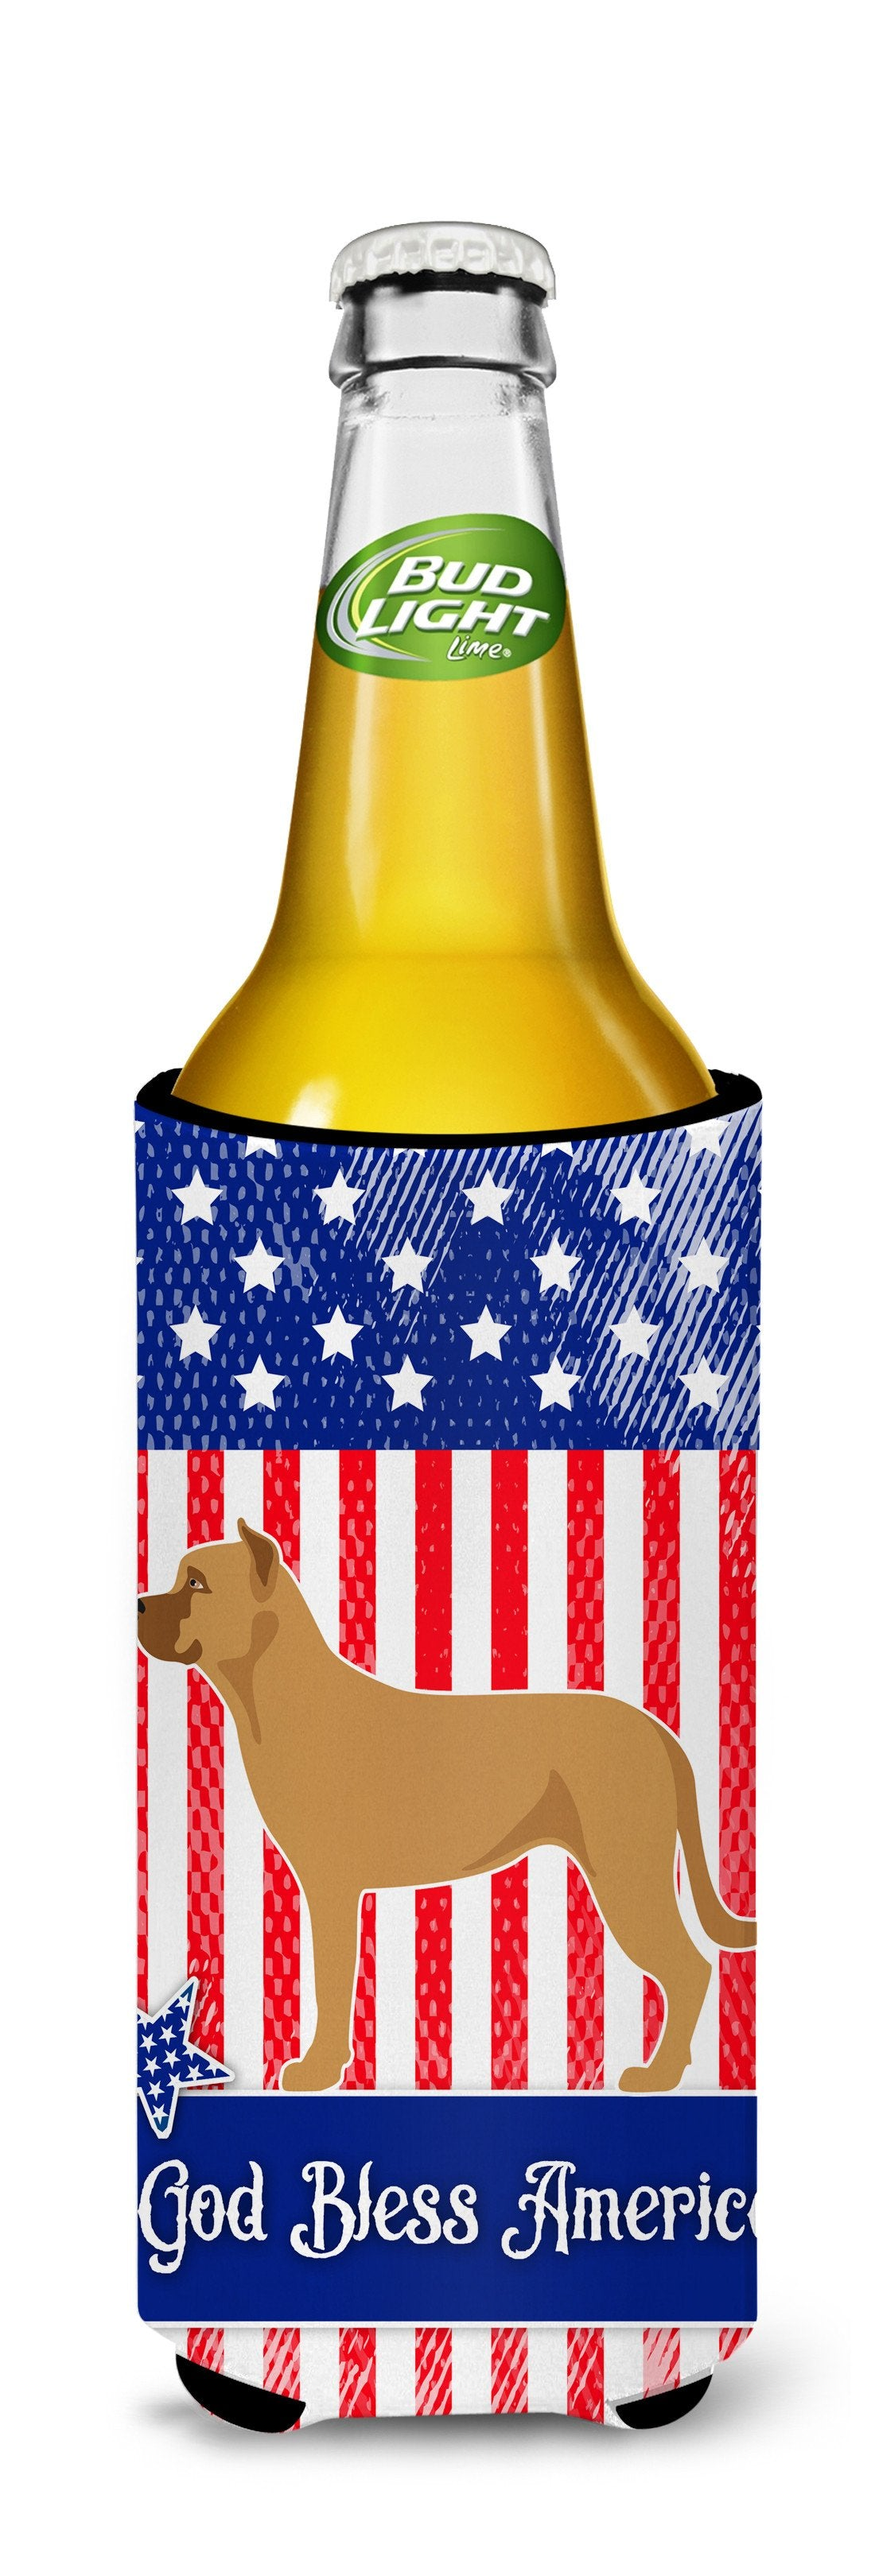 Alano Espanol Spanish Bulldog American Michelob Ultra Hugger for slim cans BB8425MUK by Caroline's Treasures